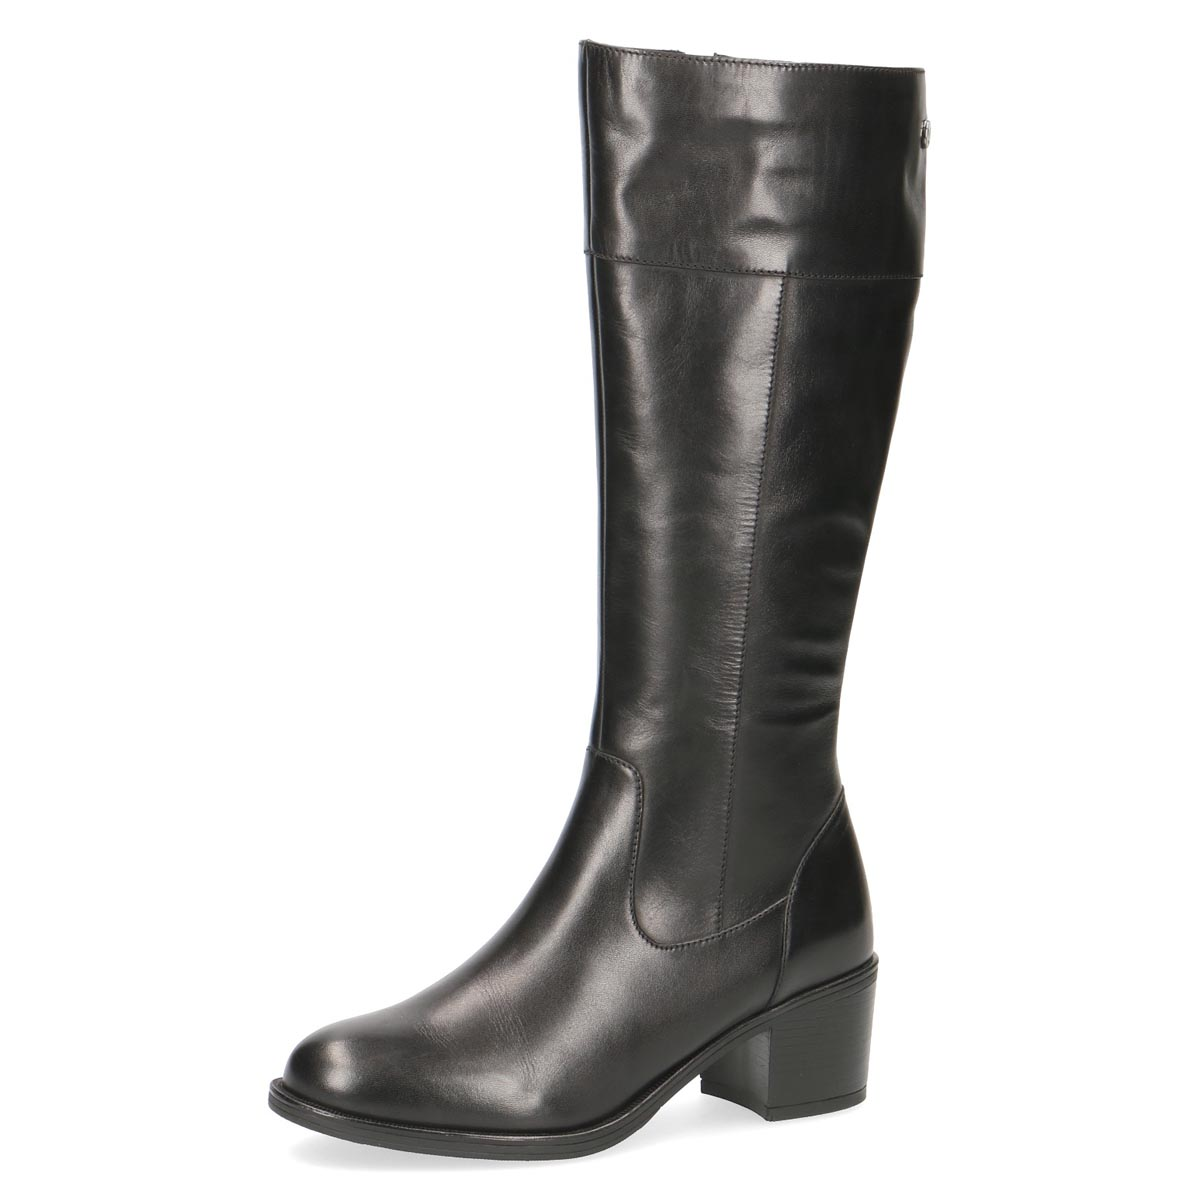 Caprice - Frankie Black Leather Long Boot